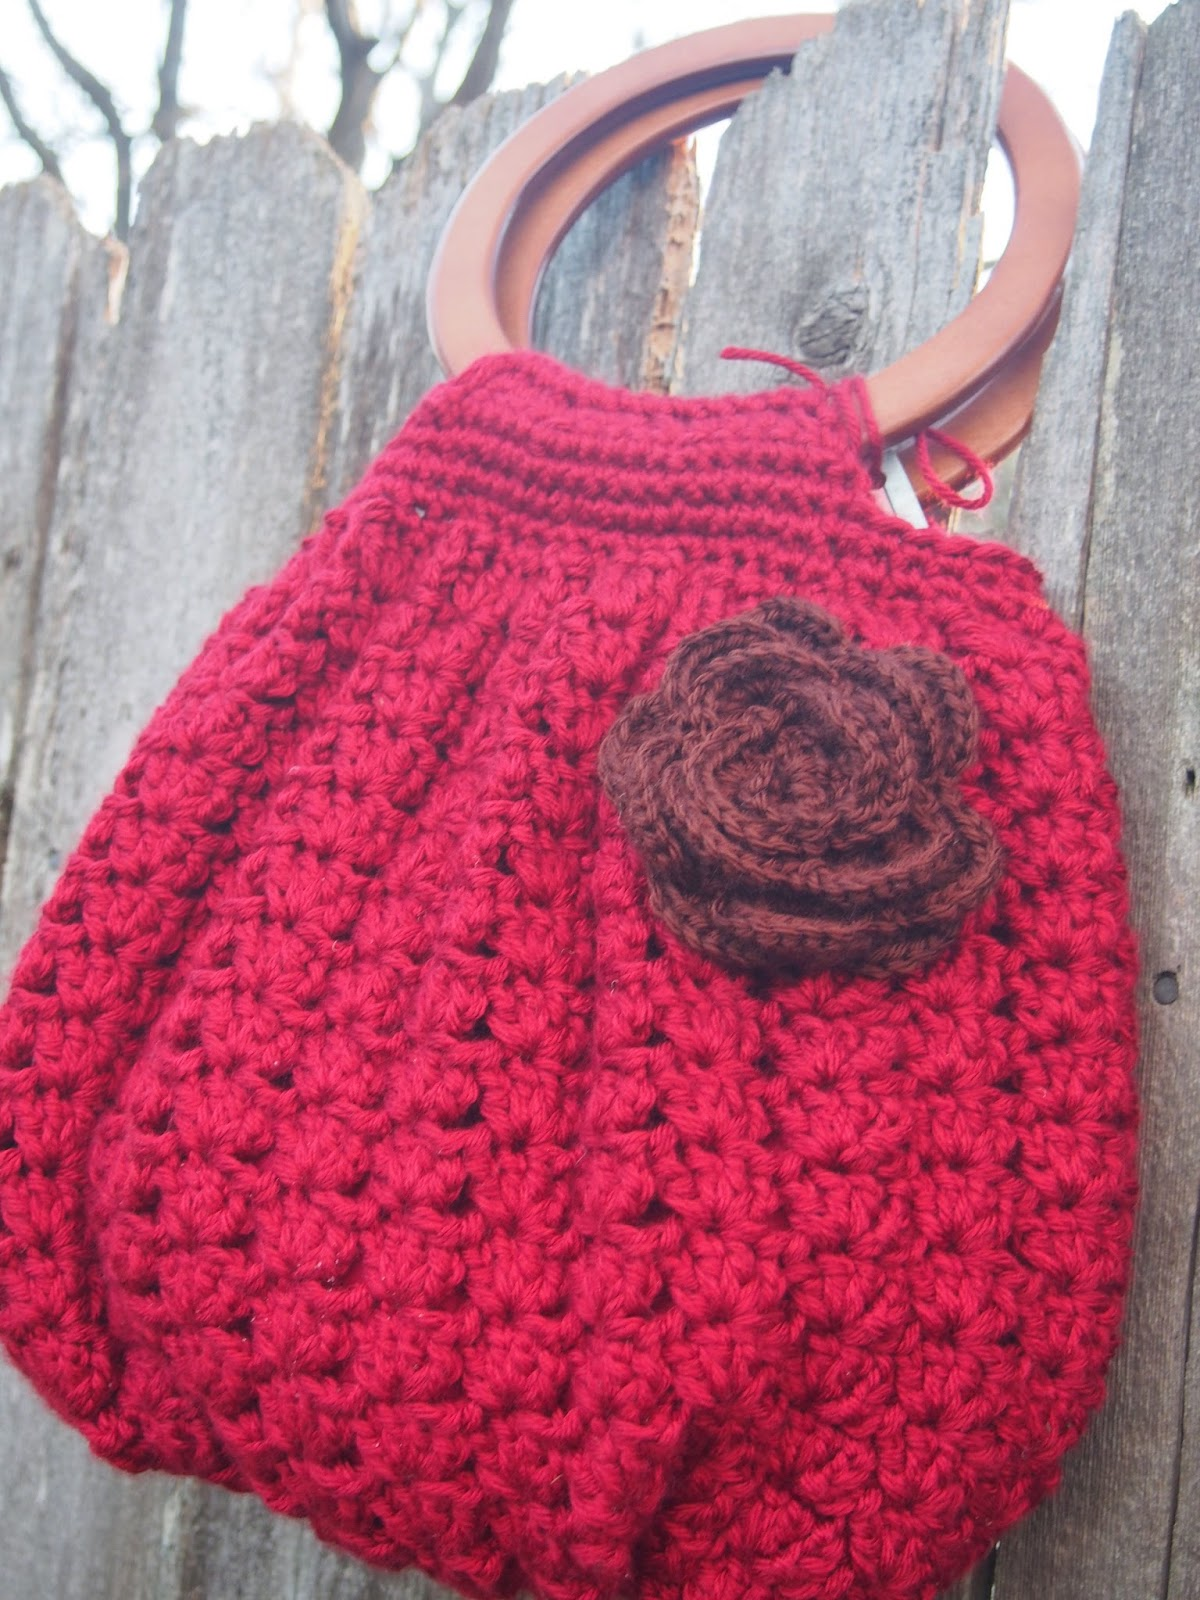 Crochet Hobo Bag Pattern : Crochet Hobo Purse free pattern MeganYouHappyCrochet